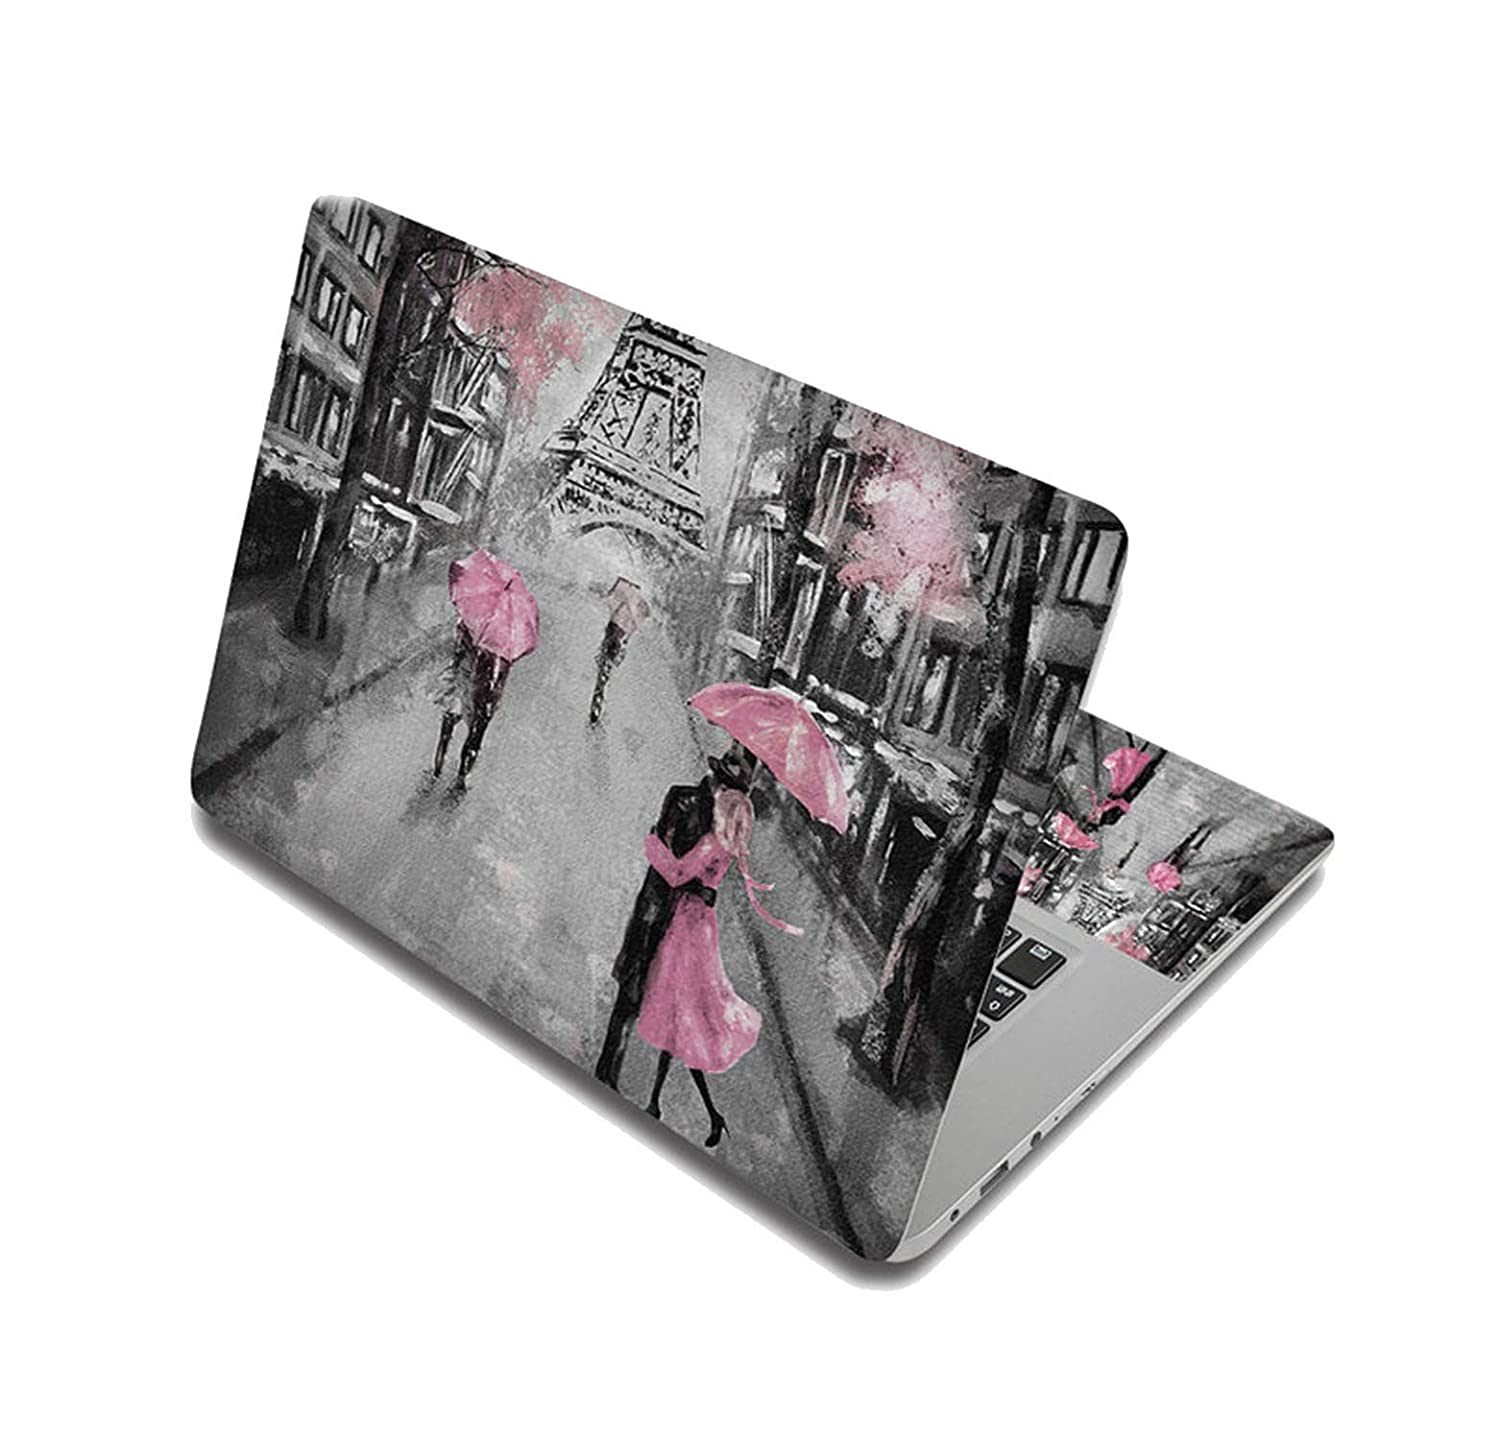 Notebook Skin For Computer Stickers Sticker For Laptop Skin Decals For Pro/Acer/Hp/Dell/Mac,17 Inch,Laptop Skin 5